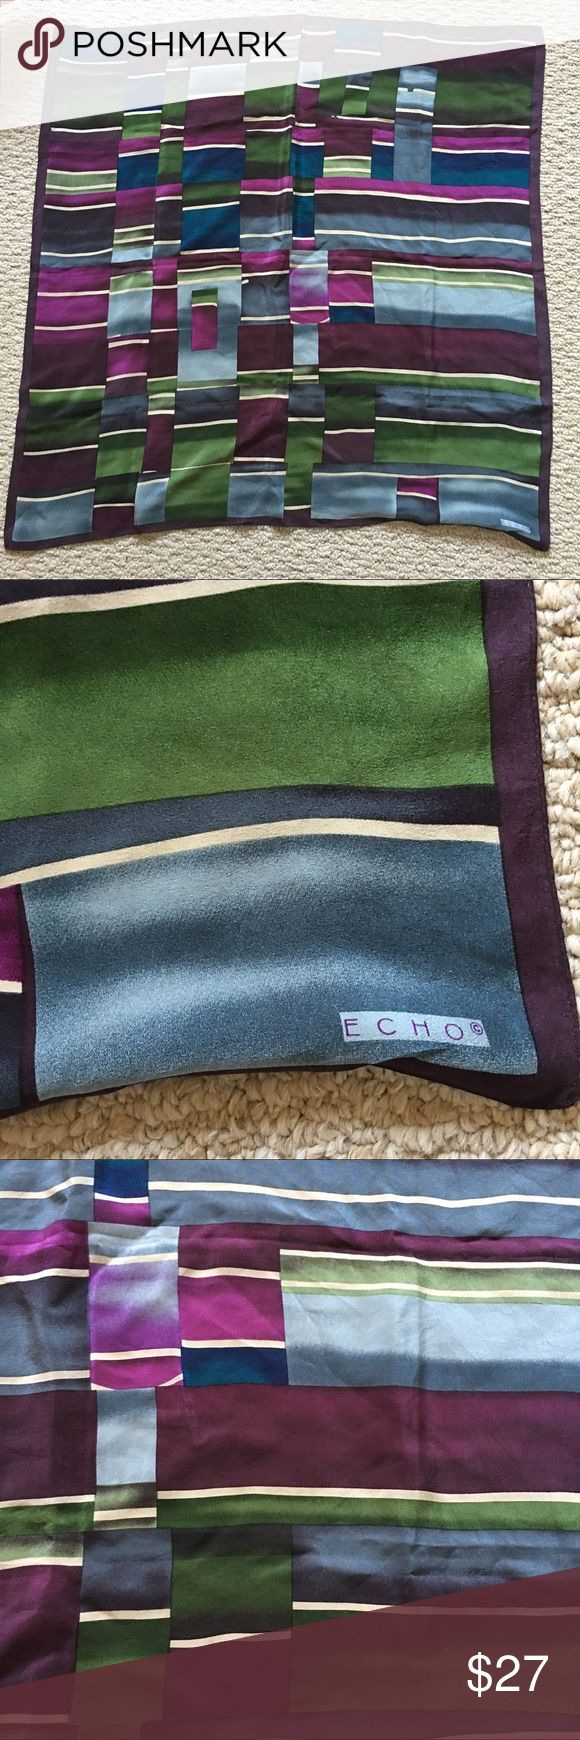 Silk Echo scarf Gorgeous silk scarf in jewel tones. Very good used condition. Approximately 29 in x 29 in. Echo Accessories Scarves & Wraps